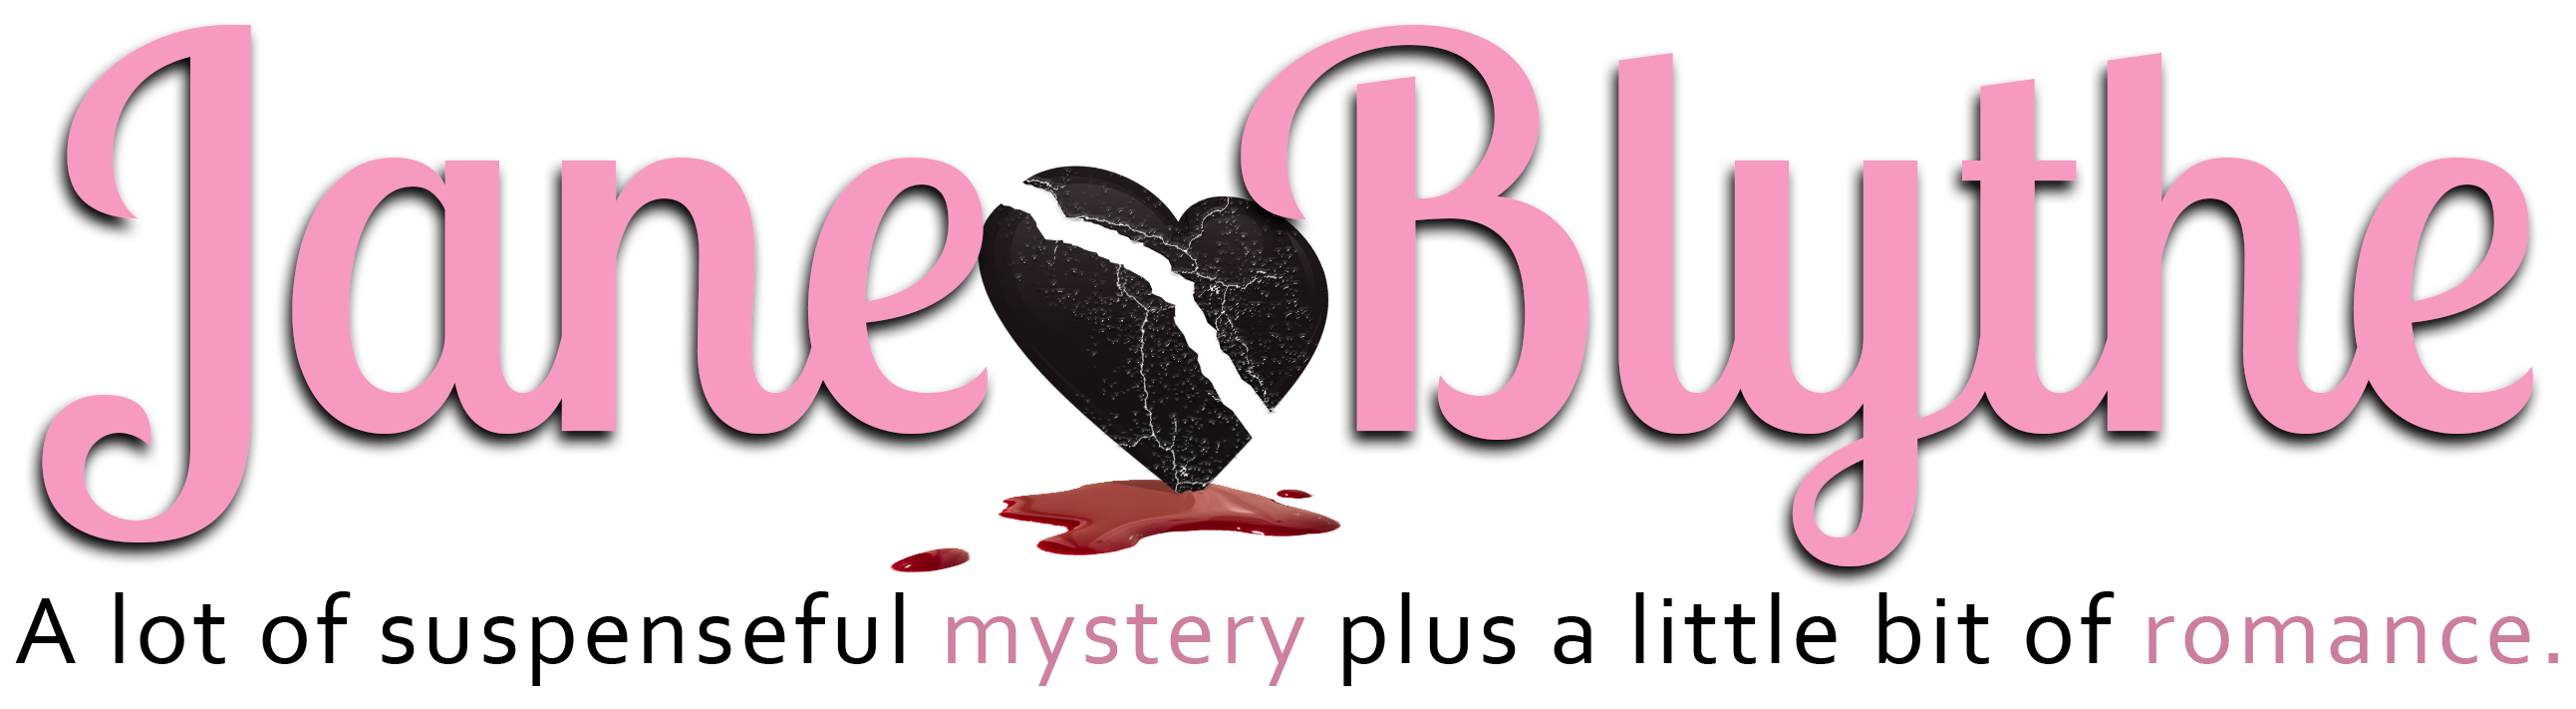 Jane Blythe Romantic Suspense Author